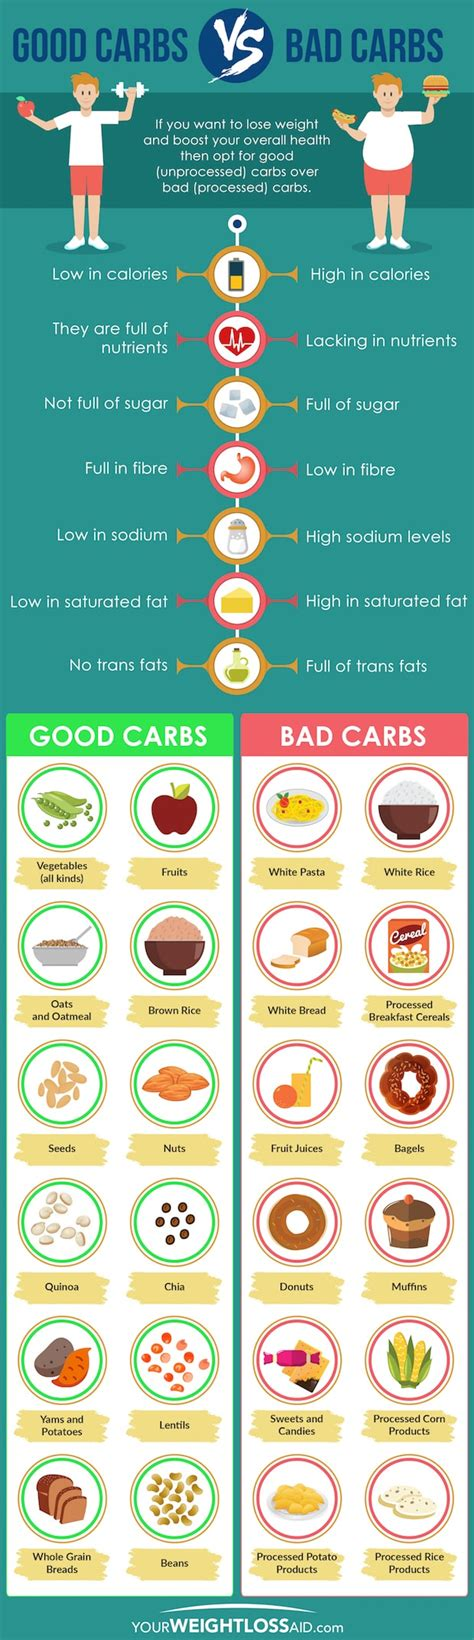 carbohydrates or bad carbs vs bad carbs infographic